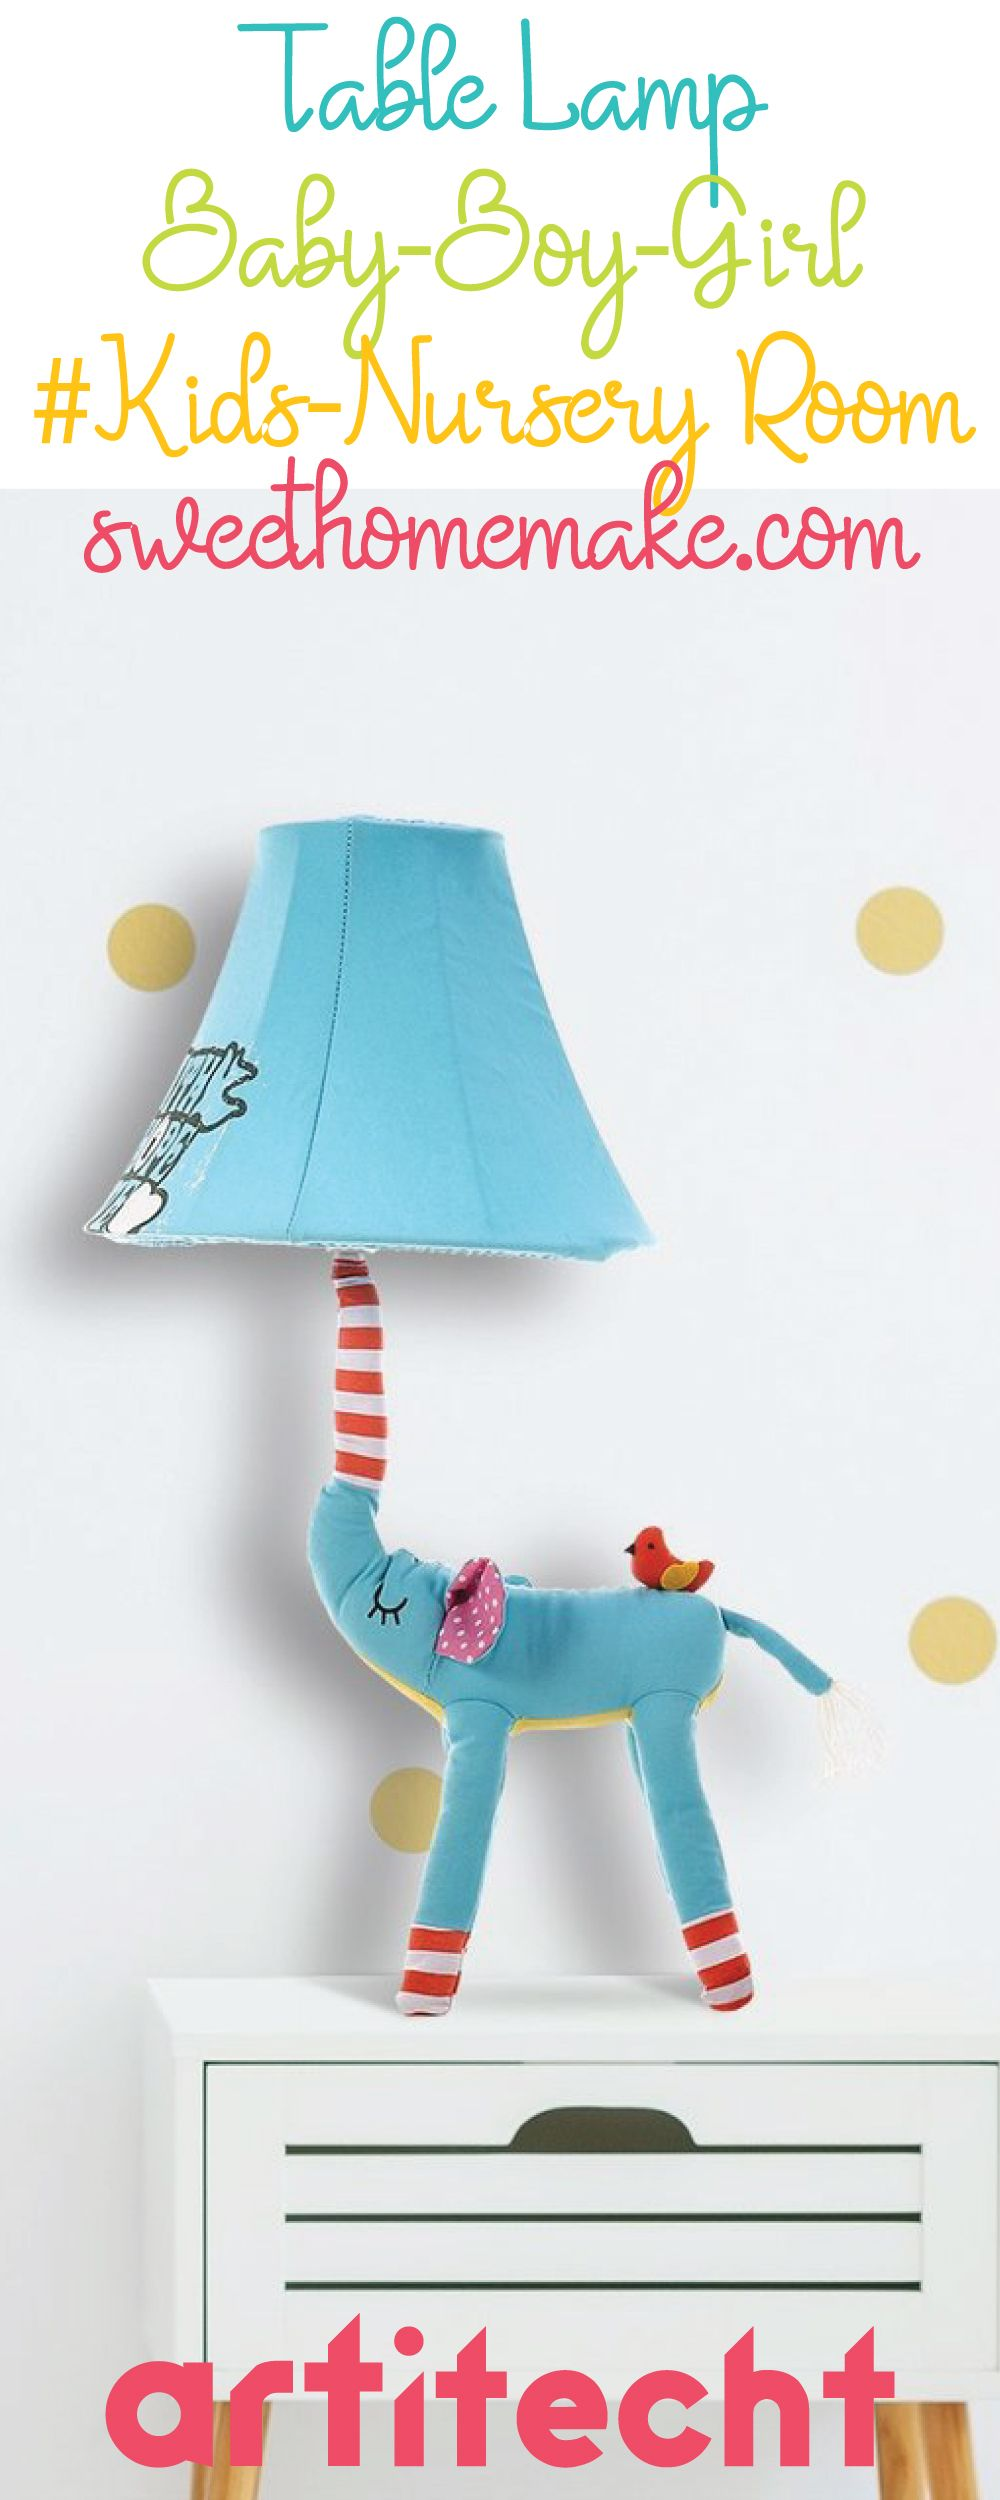 Elephant Home Decor with Elephant Toy and Elephant Table Lamp for Nursery Decor